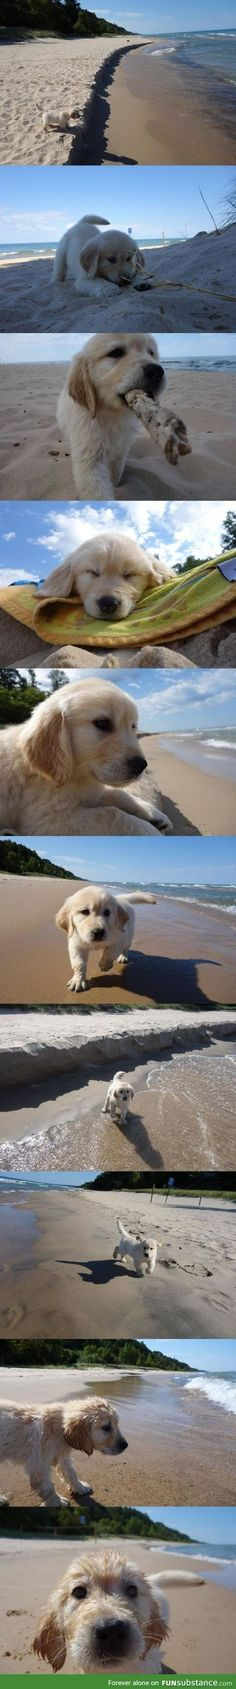 First trip to the beach? That's golden!